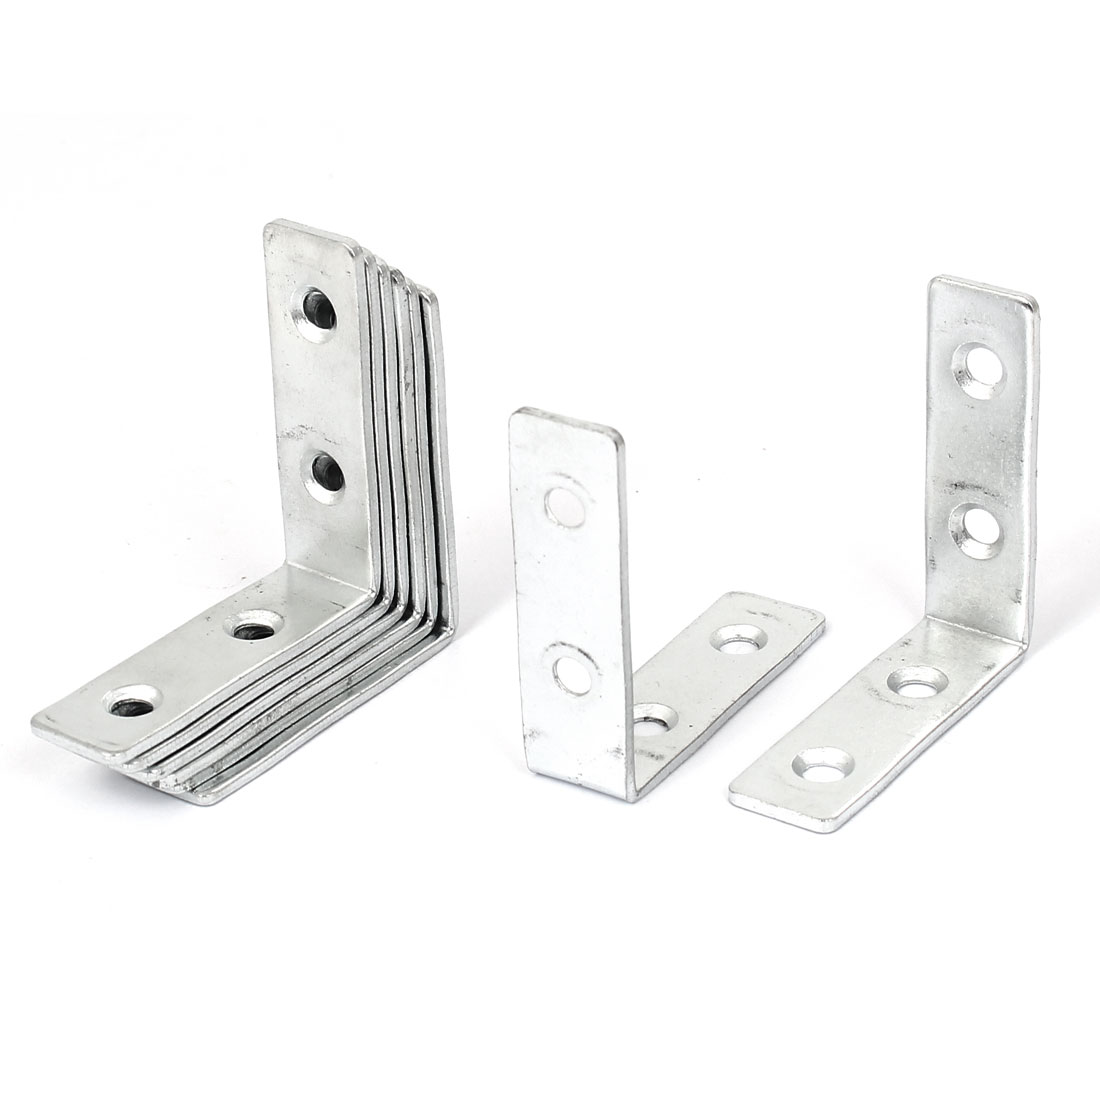 50mm x 50mm 4 Holes L Shaped Corner Brace Angle Brackets Support Fastener 8 Pcs